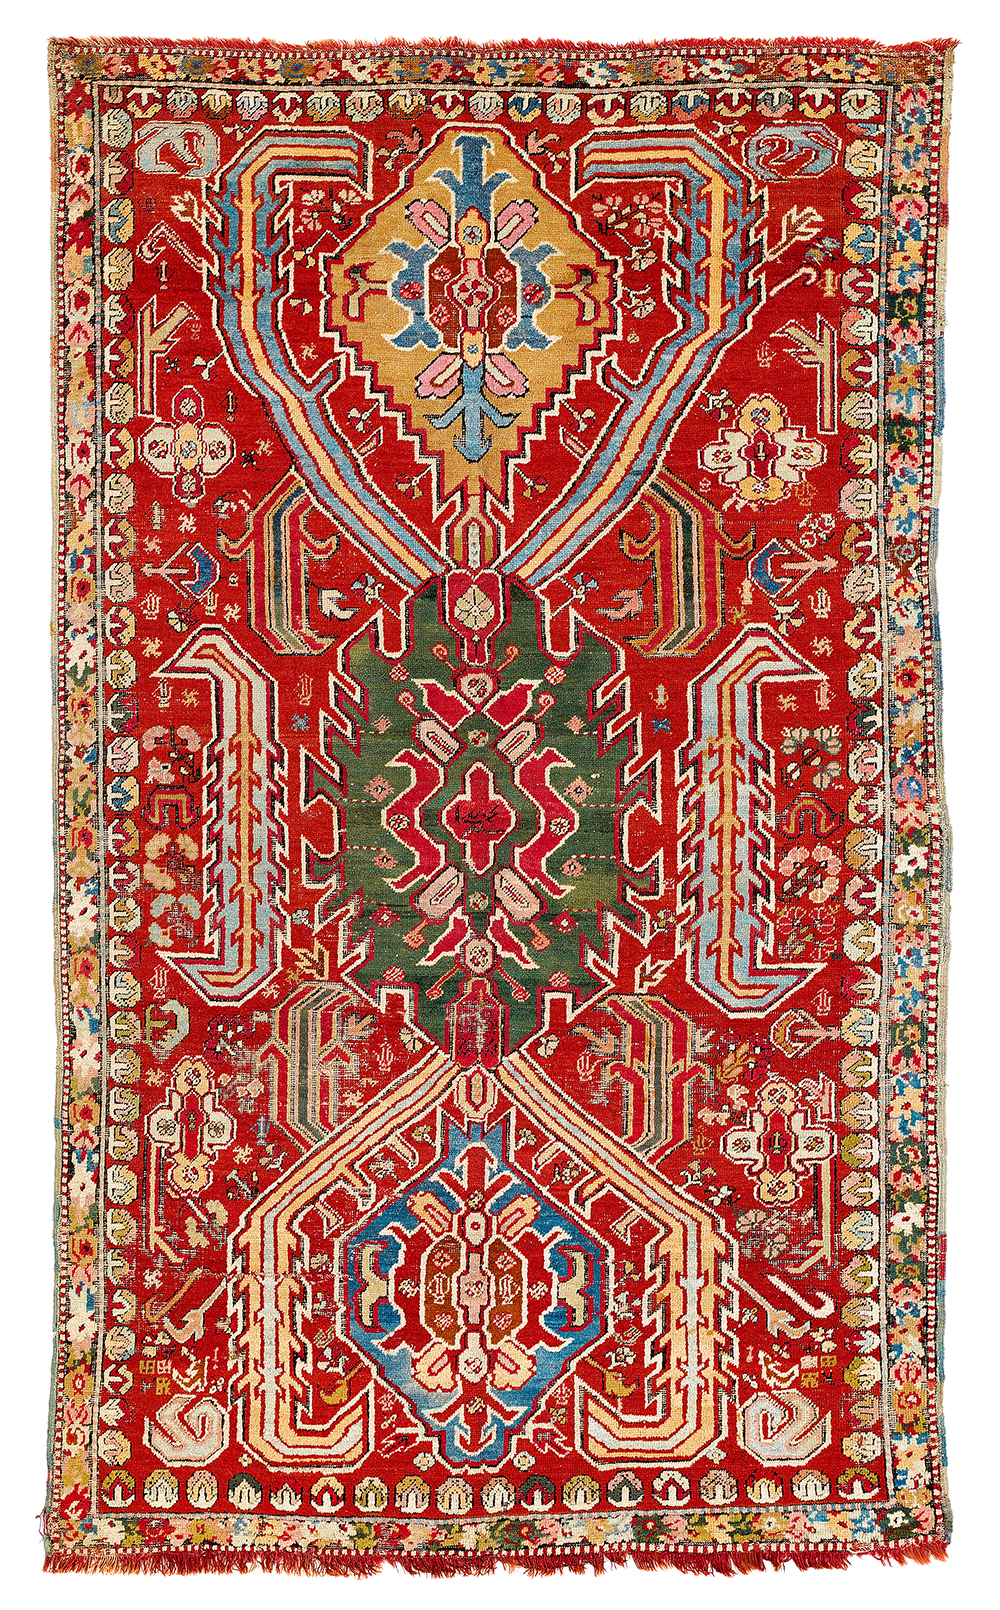 Lot 154, West Anatolian Dragon Carpet, Armenia, dated 1206 (1792), estimate €9,000